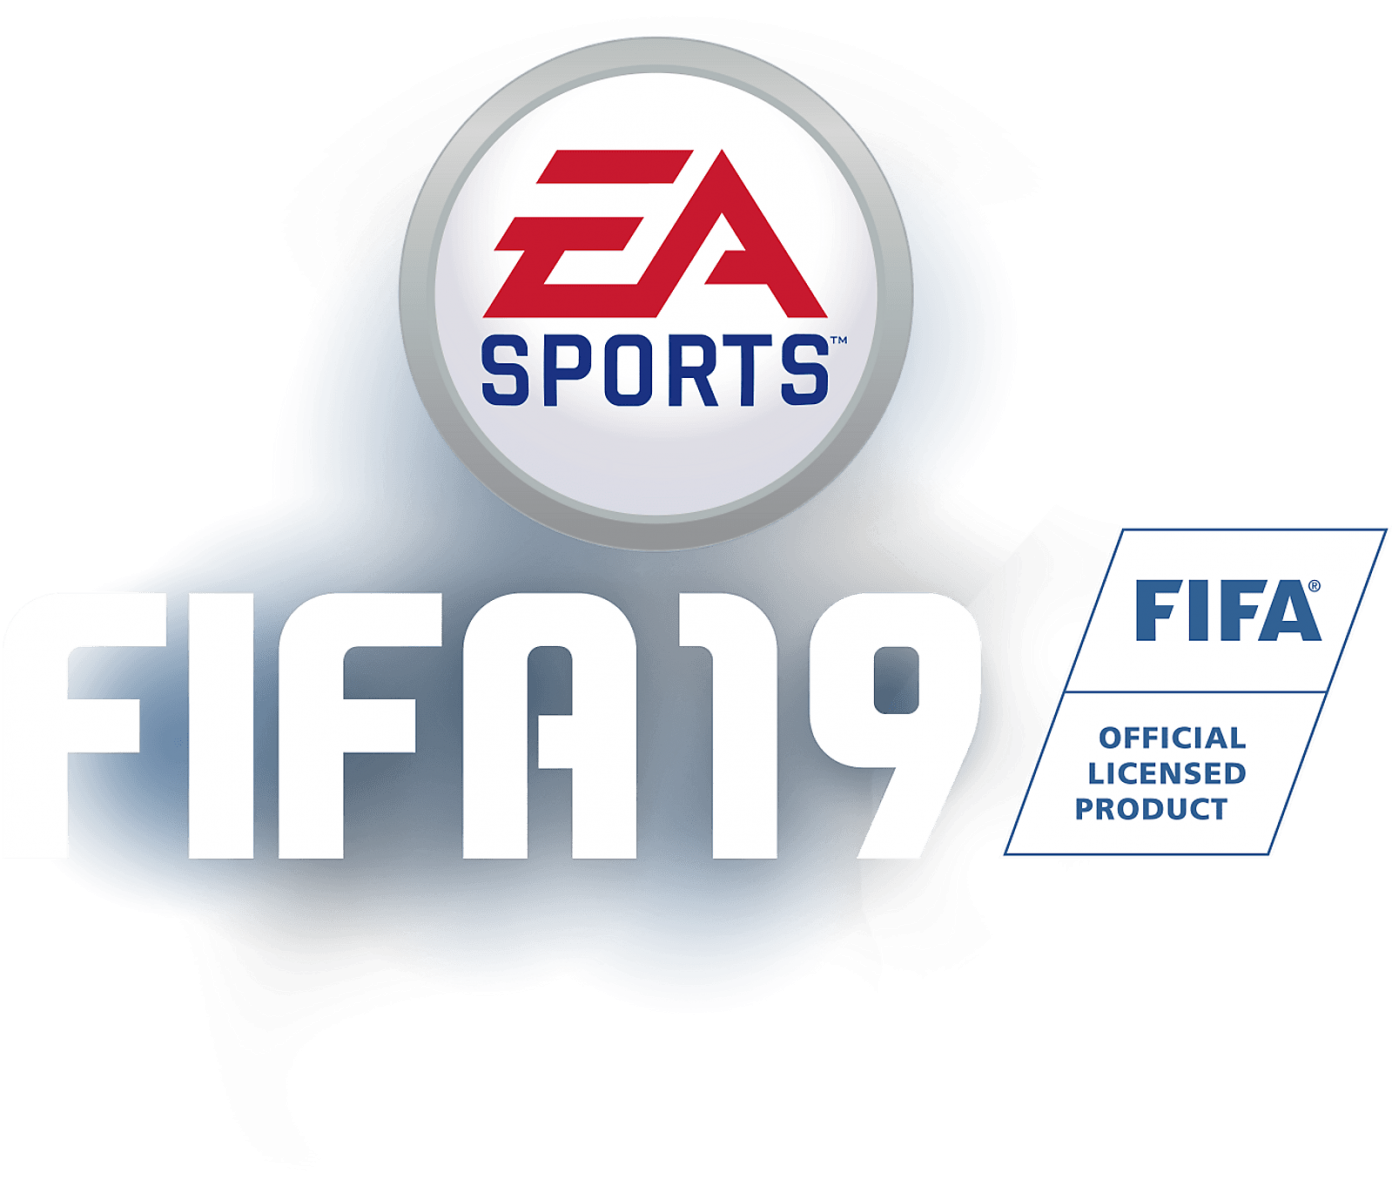 FIFA game PNG images free download.